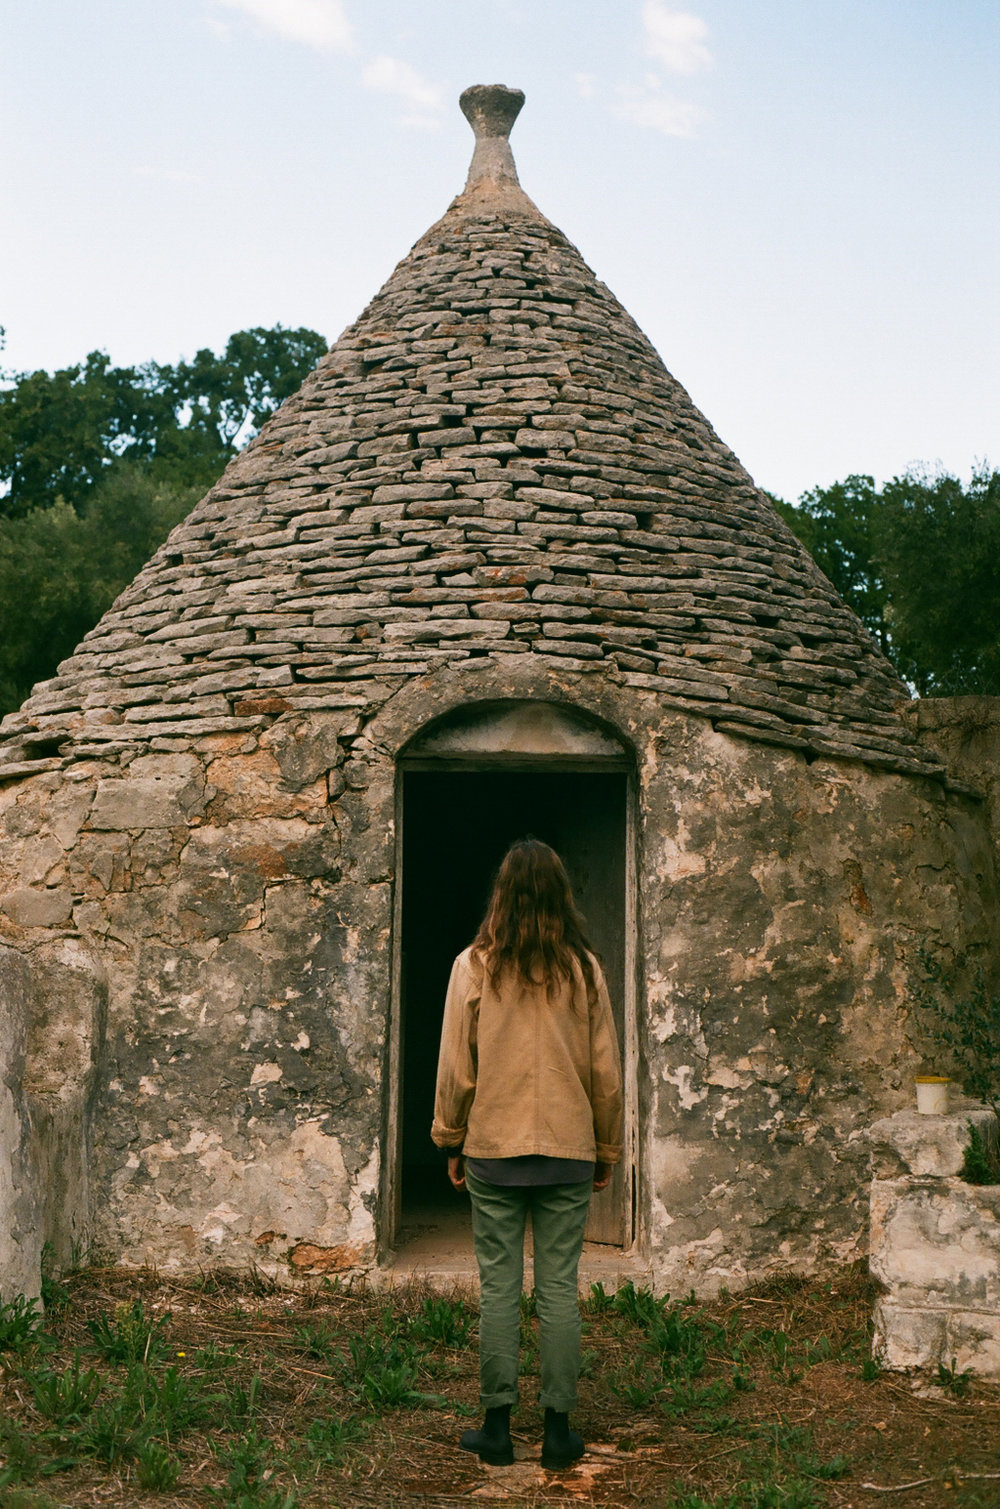 The Trulli: - A traditional dry stone hutfeaturing a conical roof - Used as a temporary fieldshelter and as tiny abodesfor agricultural workers.